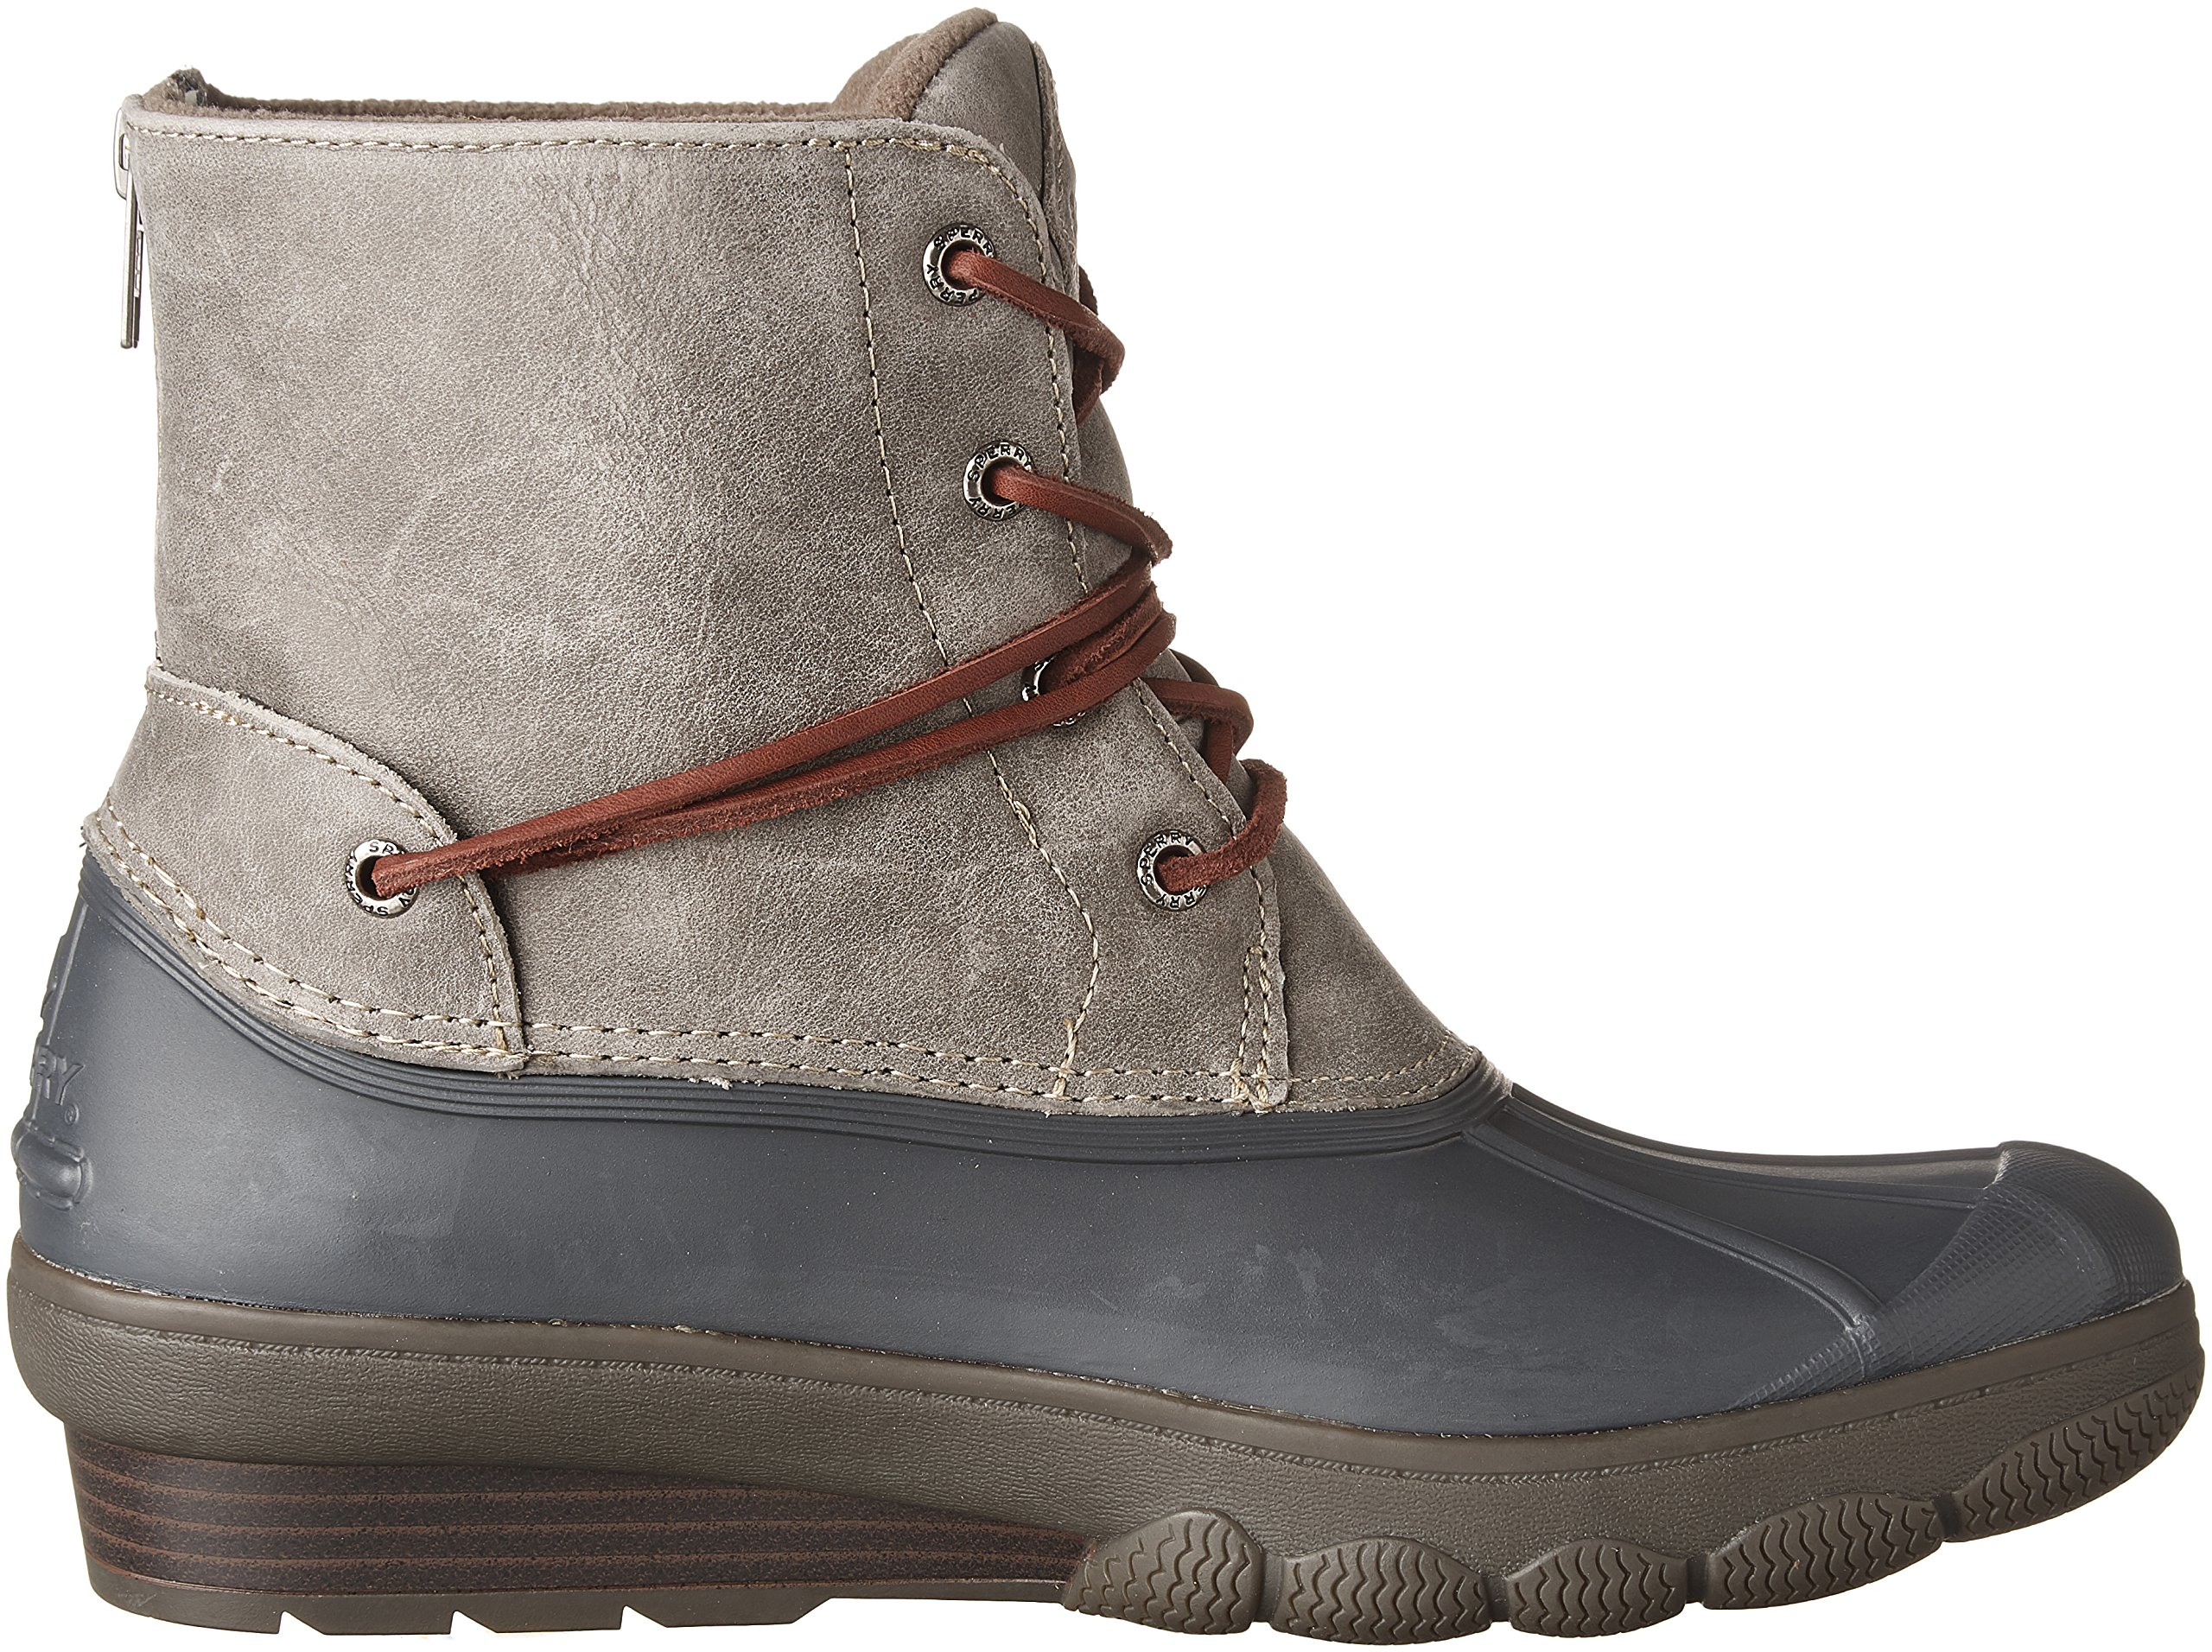 Sperry Top-Sider Women's Saltwater Wedge Tide Rain Boot, Grey, 8 Medium US by Sperry Top-Sider (Image #7)